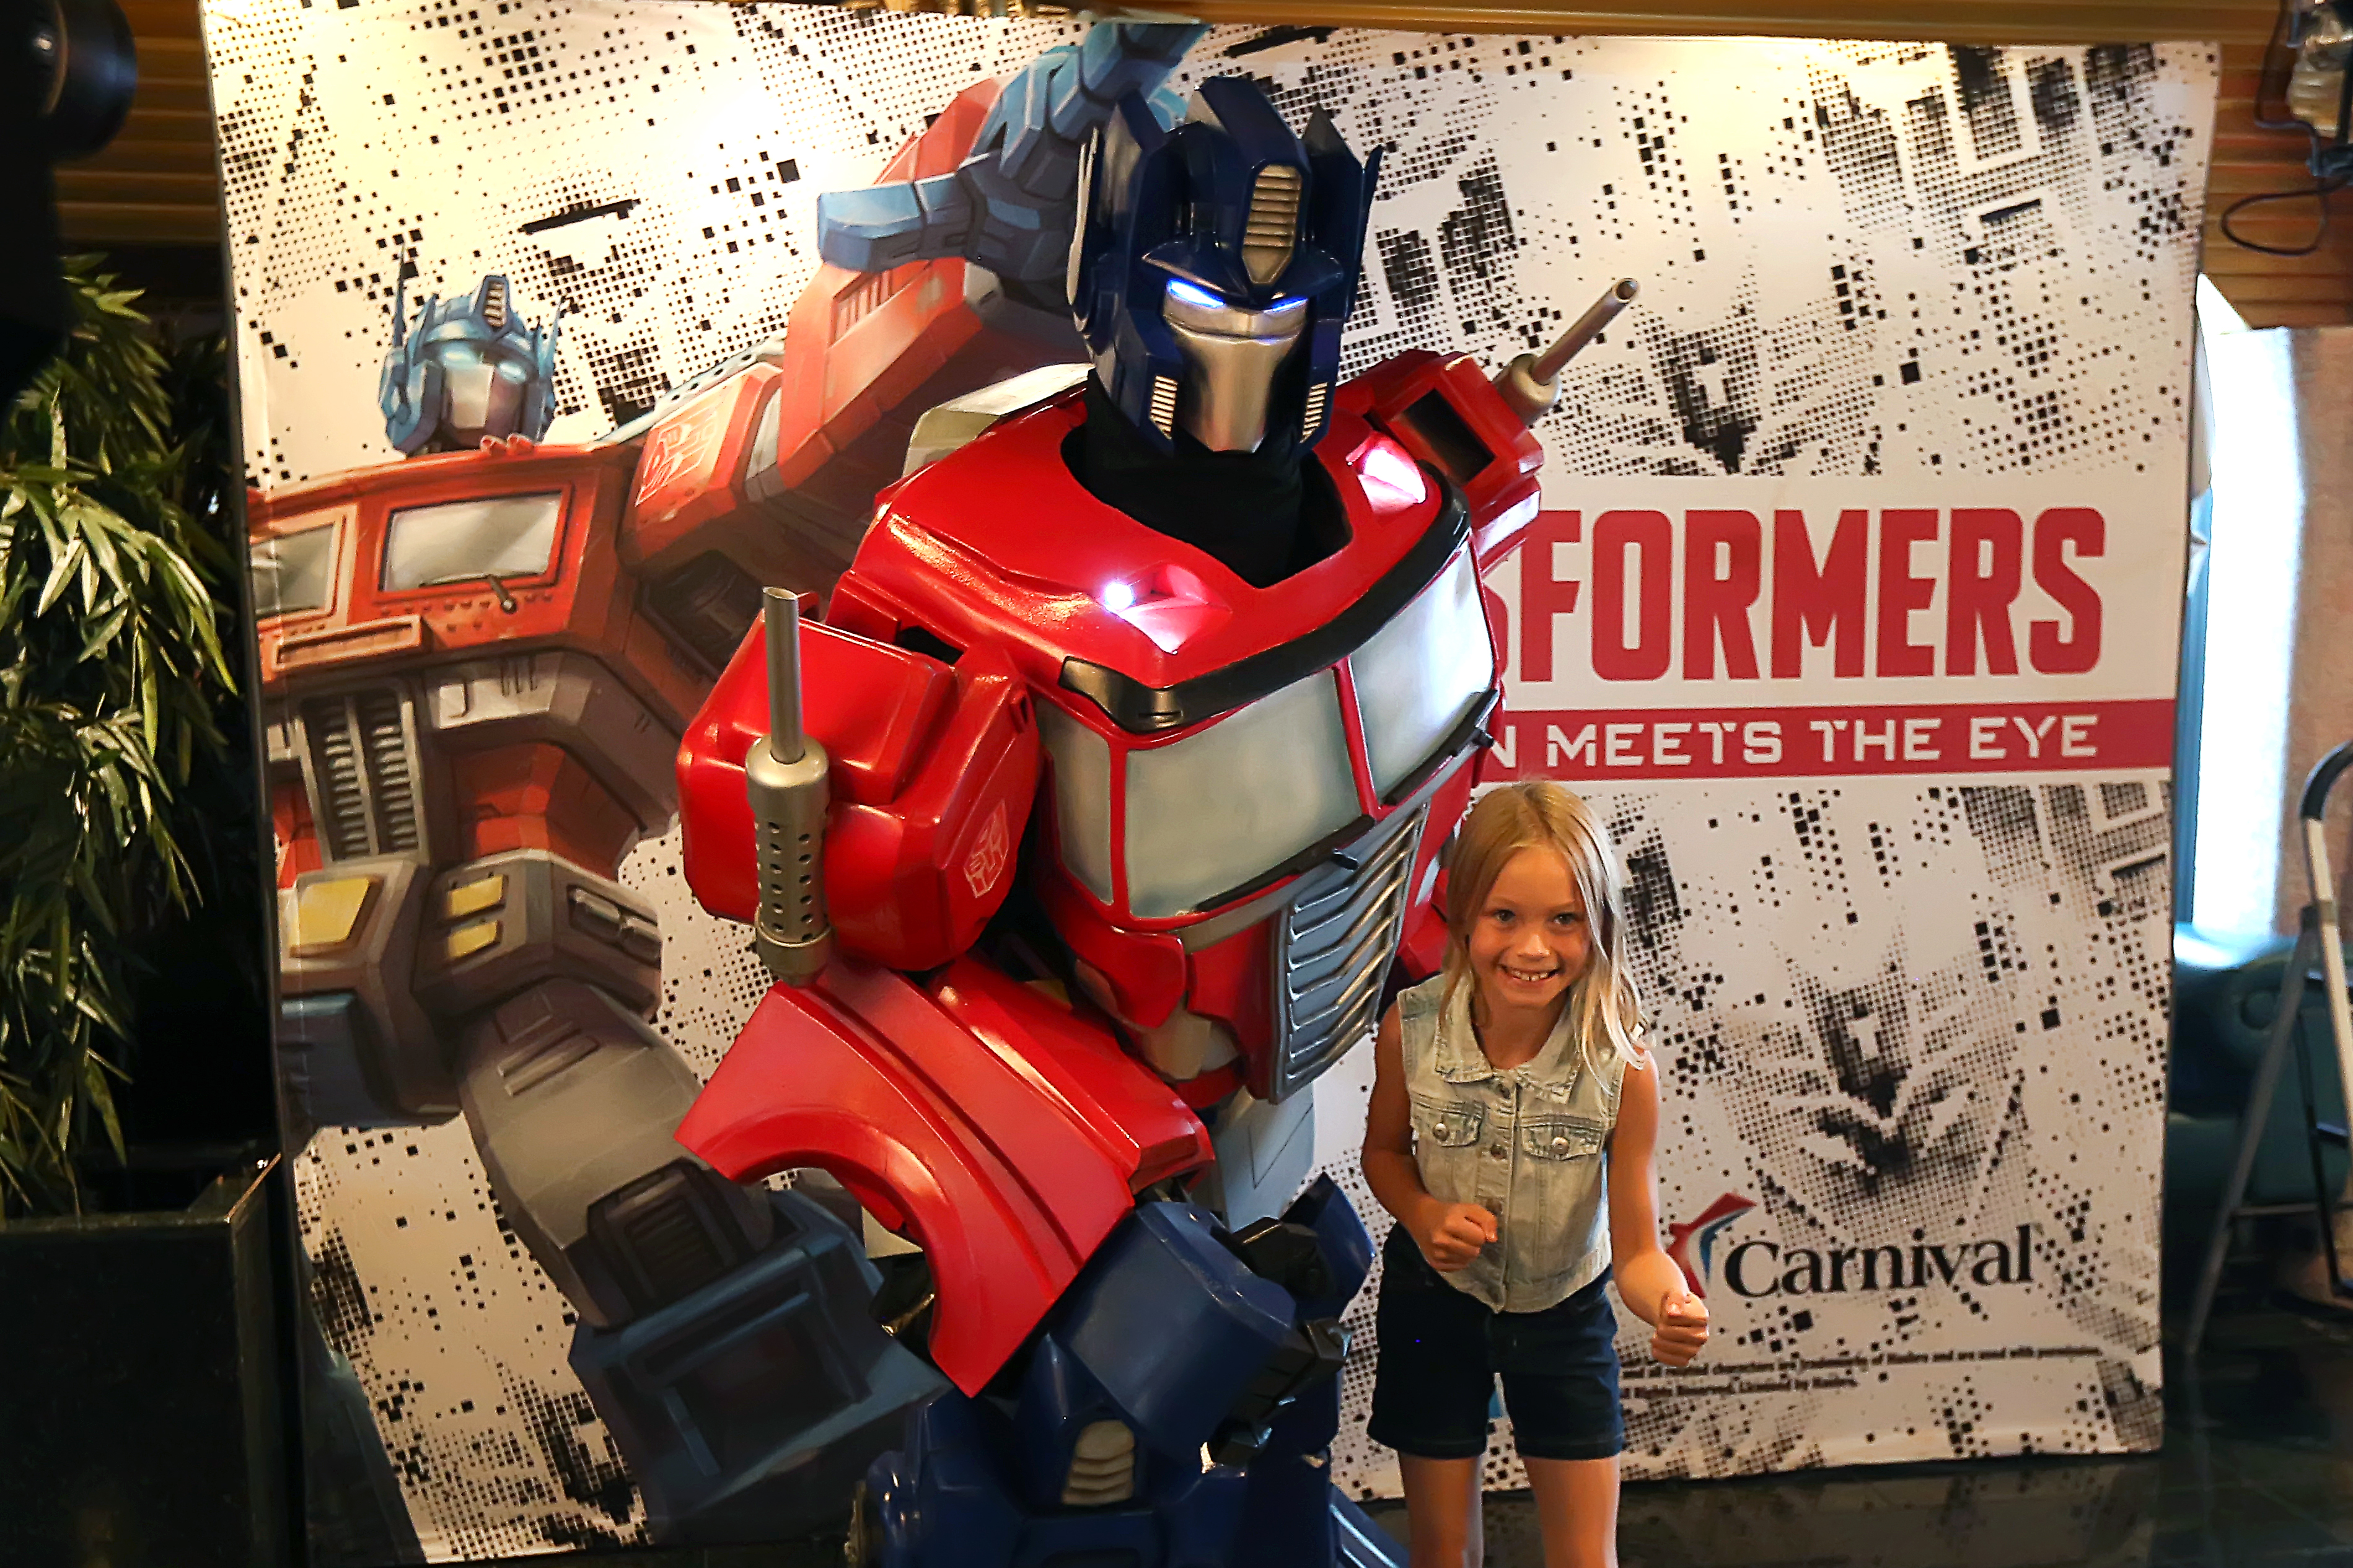 First-Ever 'Carnival Playtime' Event Featuring My Little Pony and Transformers-Inspired Activities Now Offered Aboard Carnival Imagination Through September